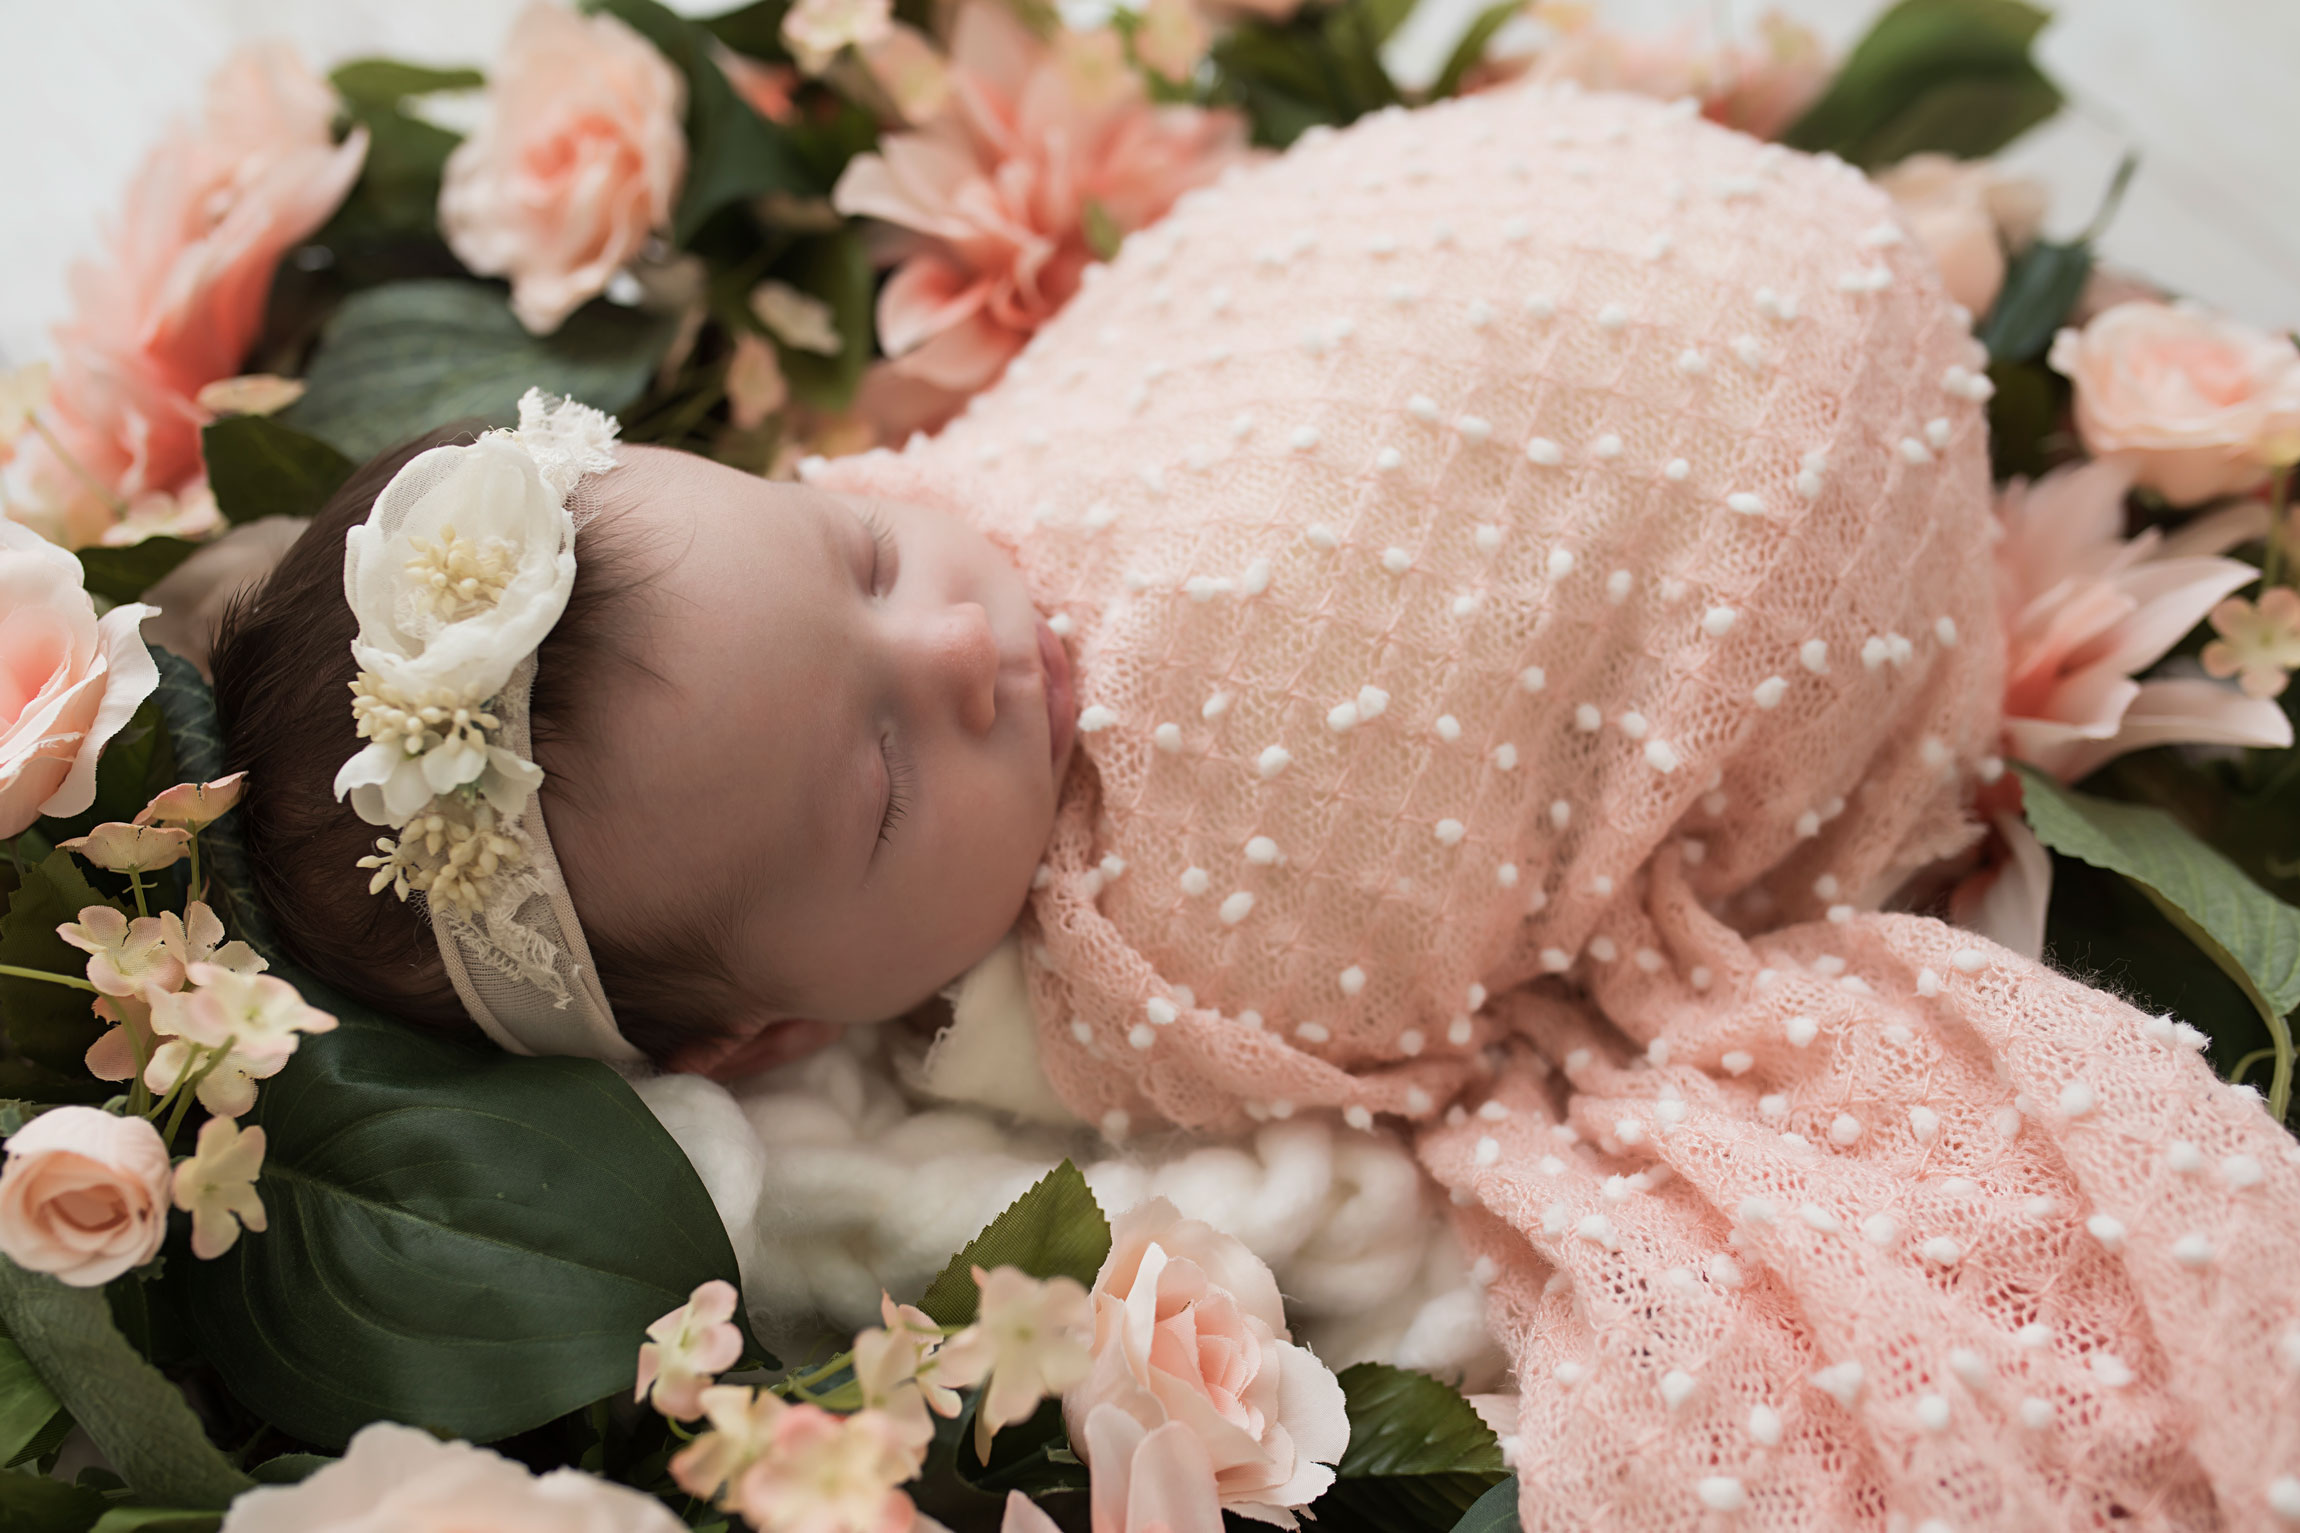 knoxville-newborn-photographer-floral-picture.jpg